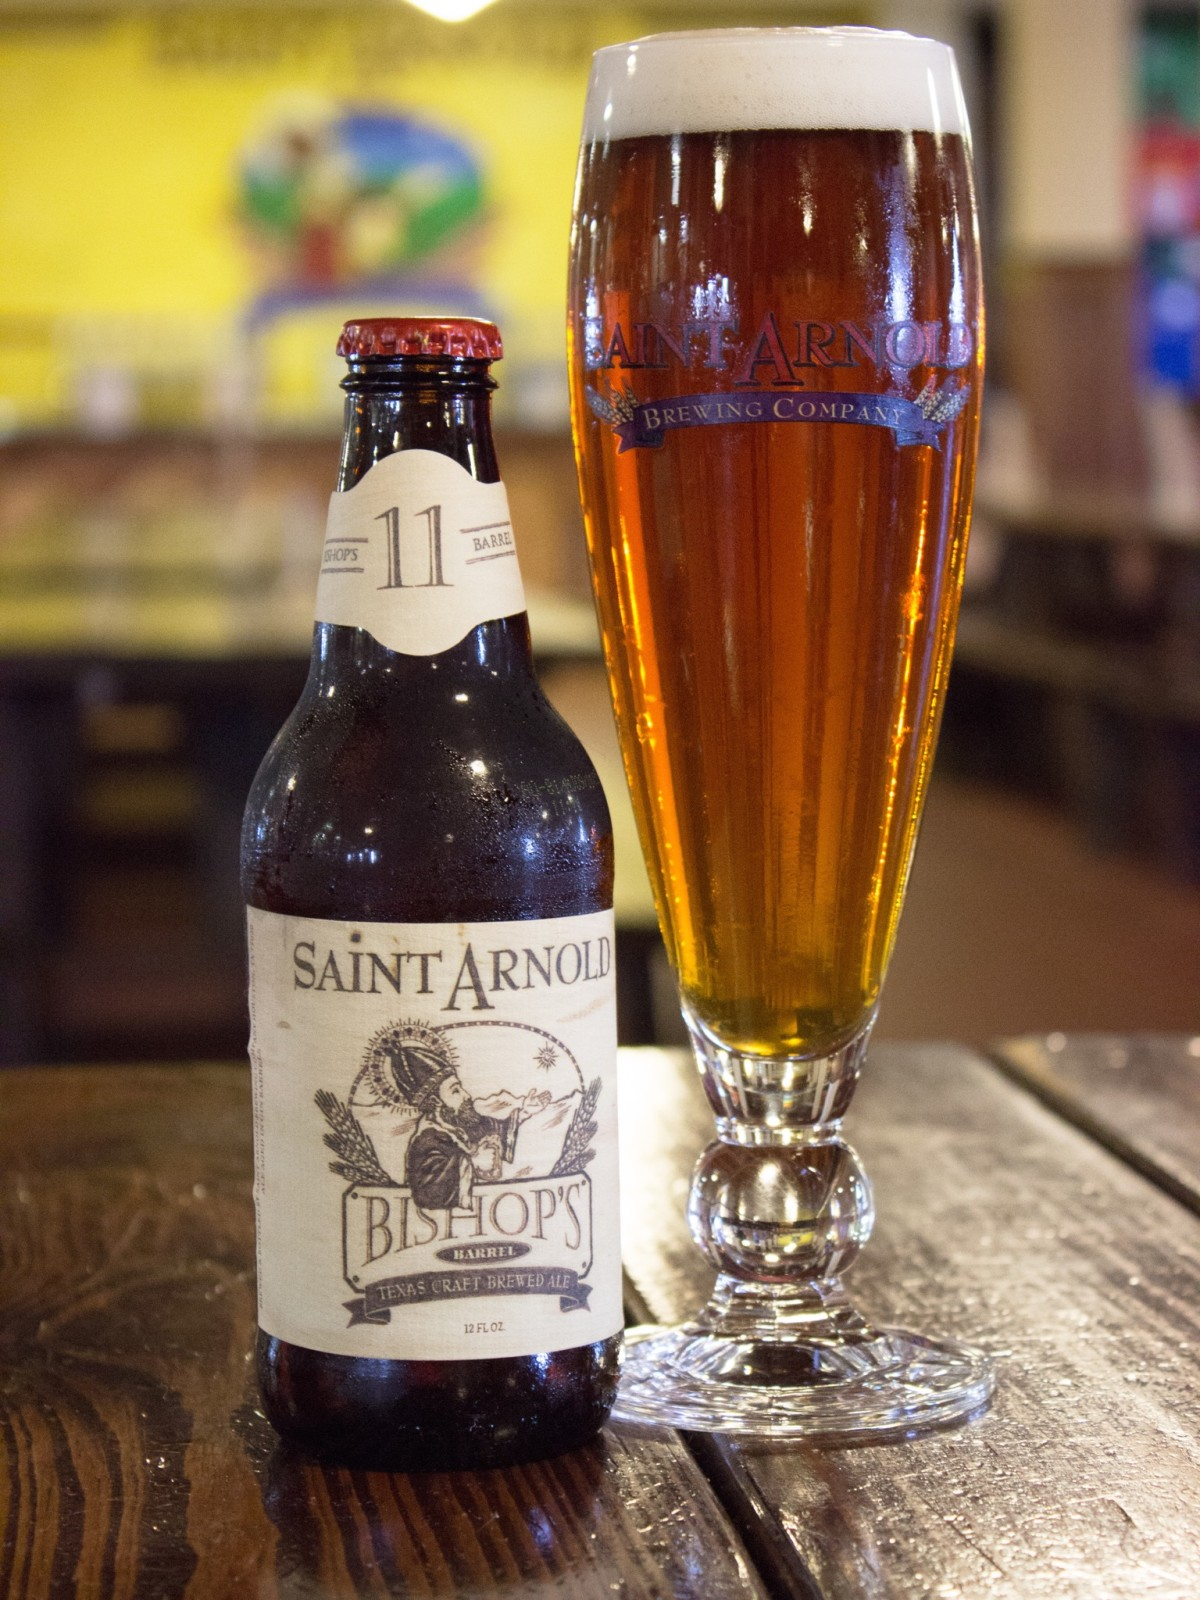 Saint Arnold Bishop's Barrel 11 glass